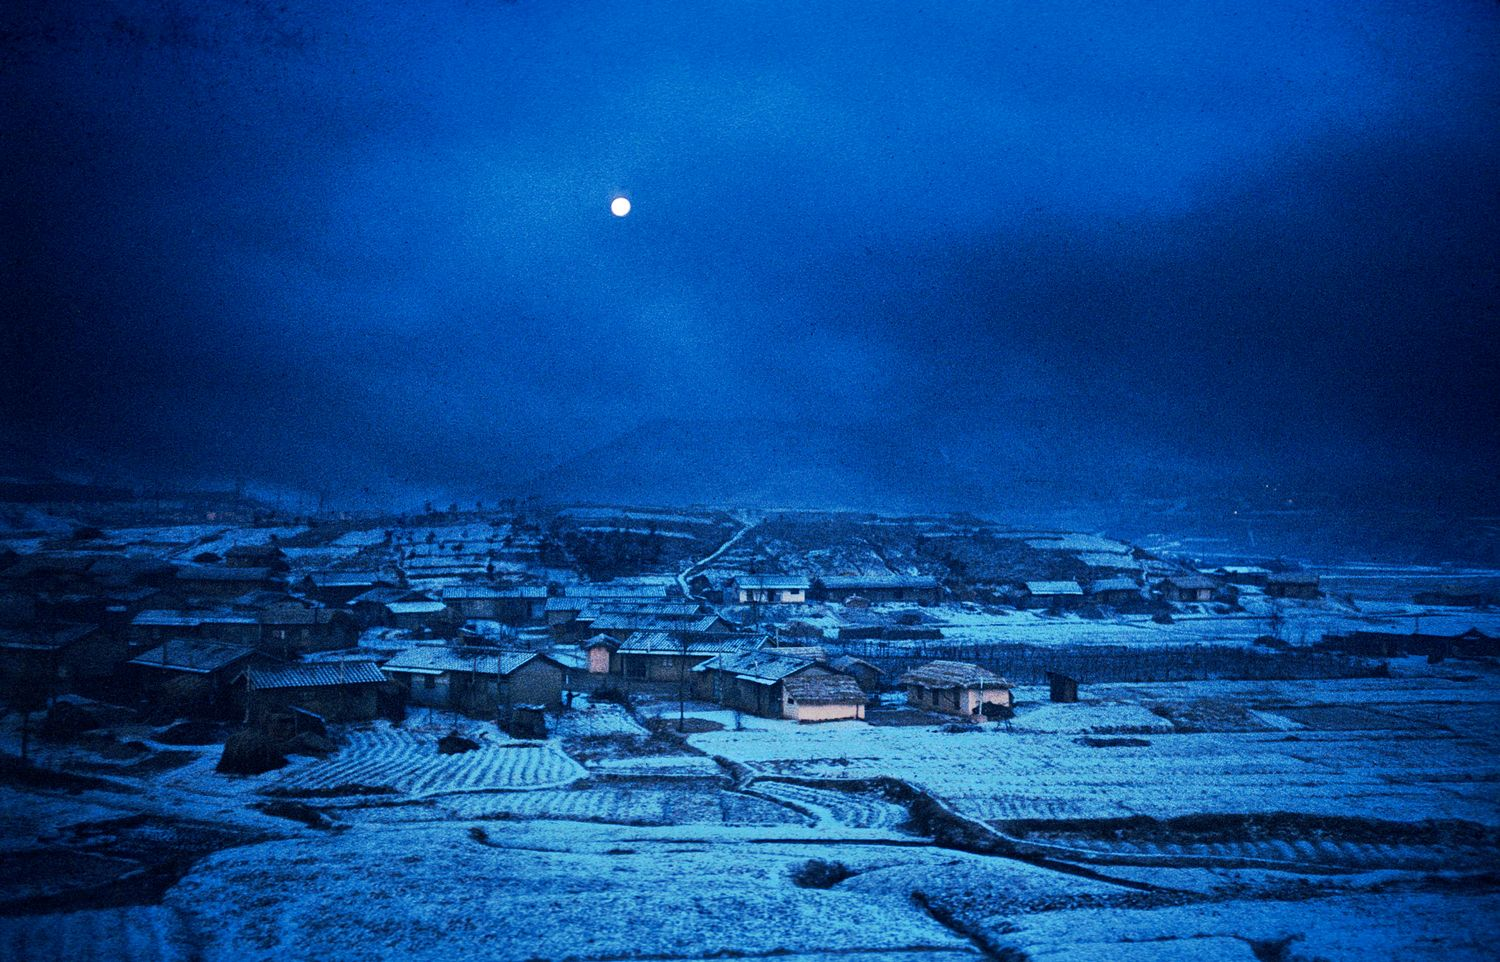 moonlit winter scene in Korea - Night falls on Uijongbu, Korea -1964 - Kodachrome - Tony Karp, design, art, photography, techno-impressionist, techno-impressionism, aerial photography , drone , drones , dji , mavic pro , video , 3D printing - Books -